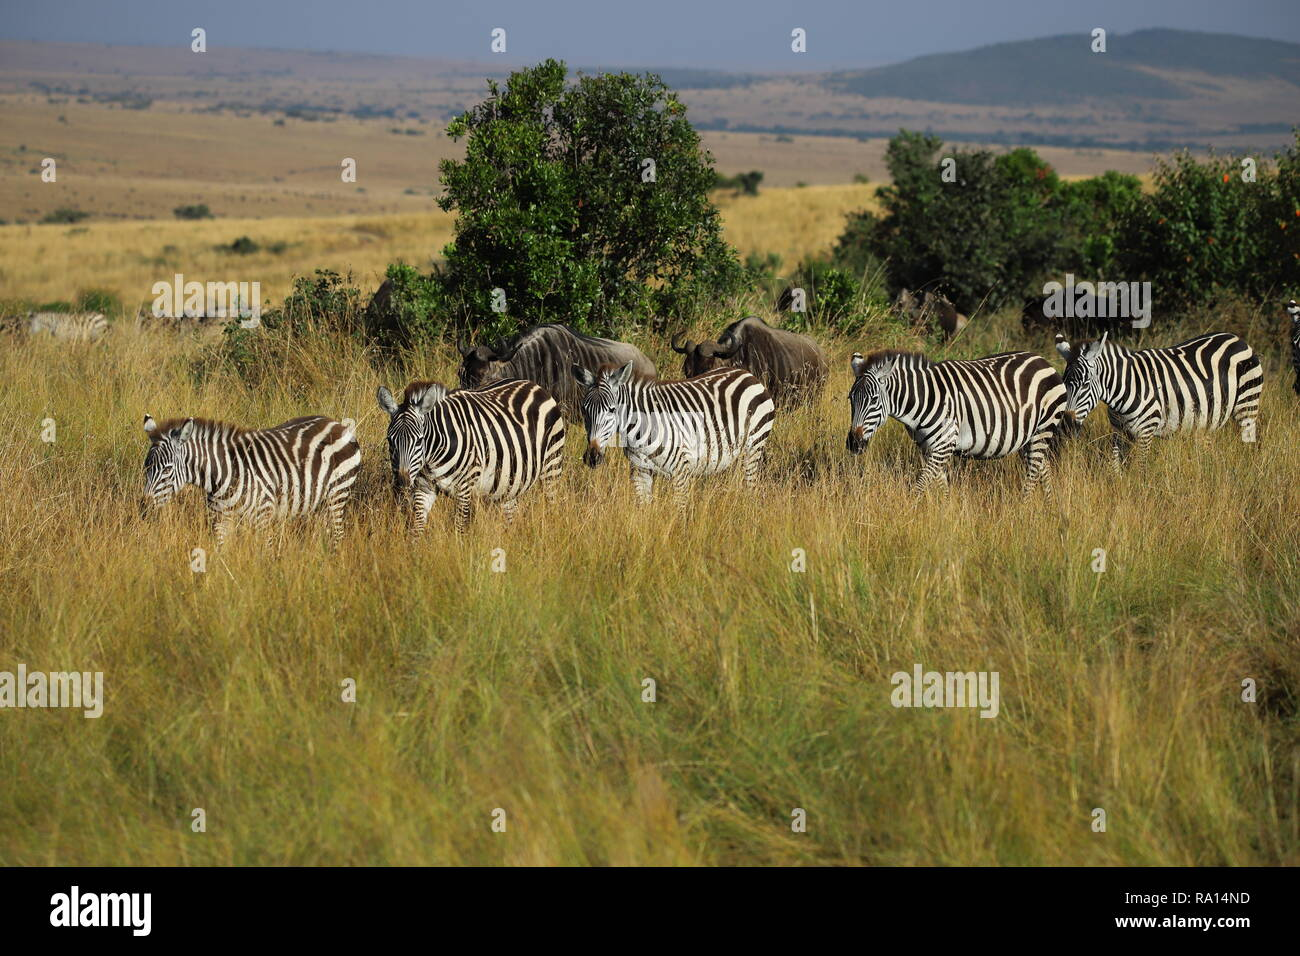 Zebras and Gnus wander side by side through the Masai Mara - Stock Image